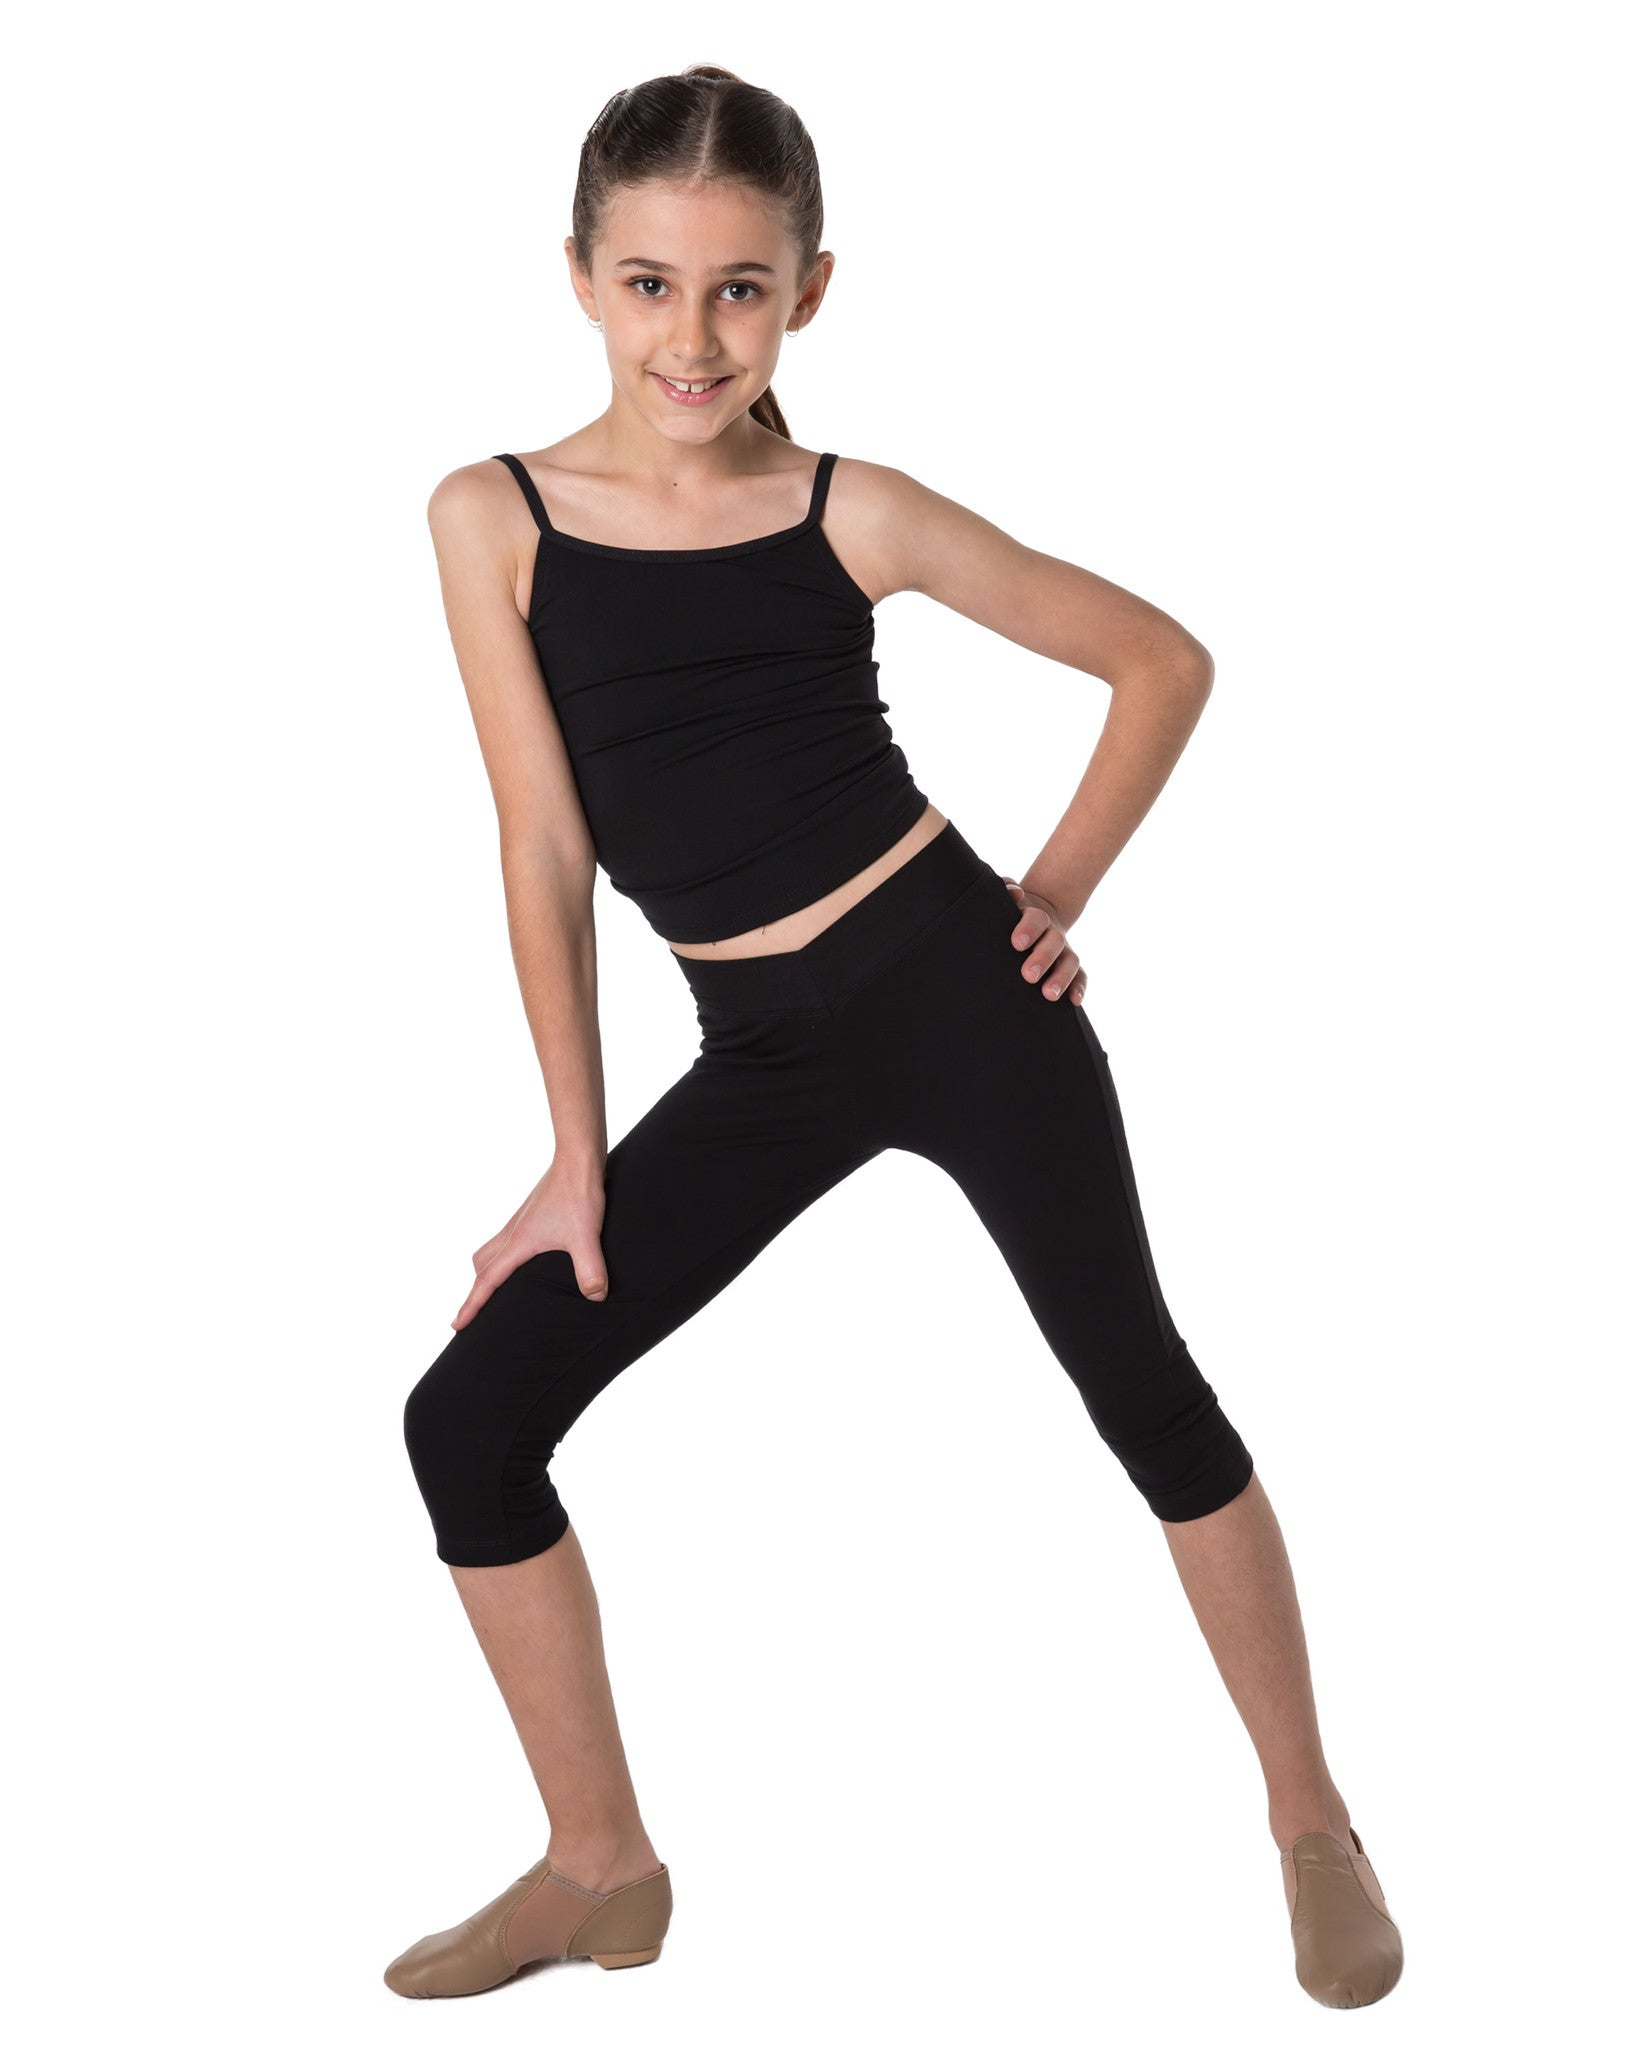 STUDIO 7 3/4 LEGGINGS CHILD CHLG01